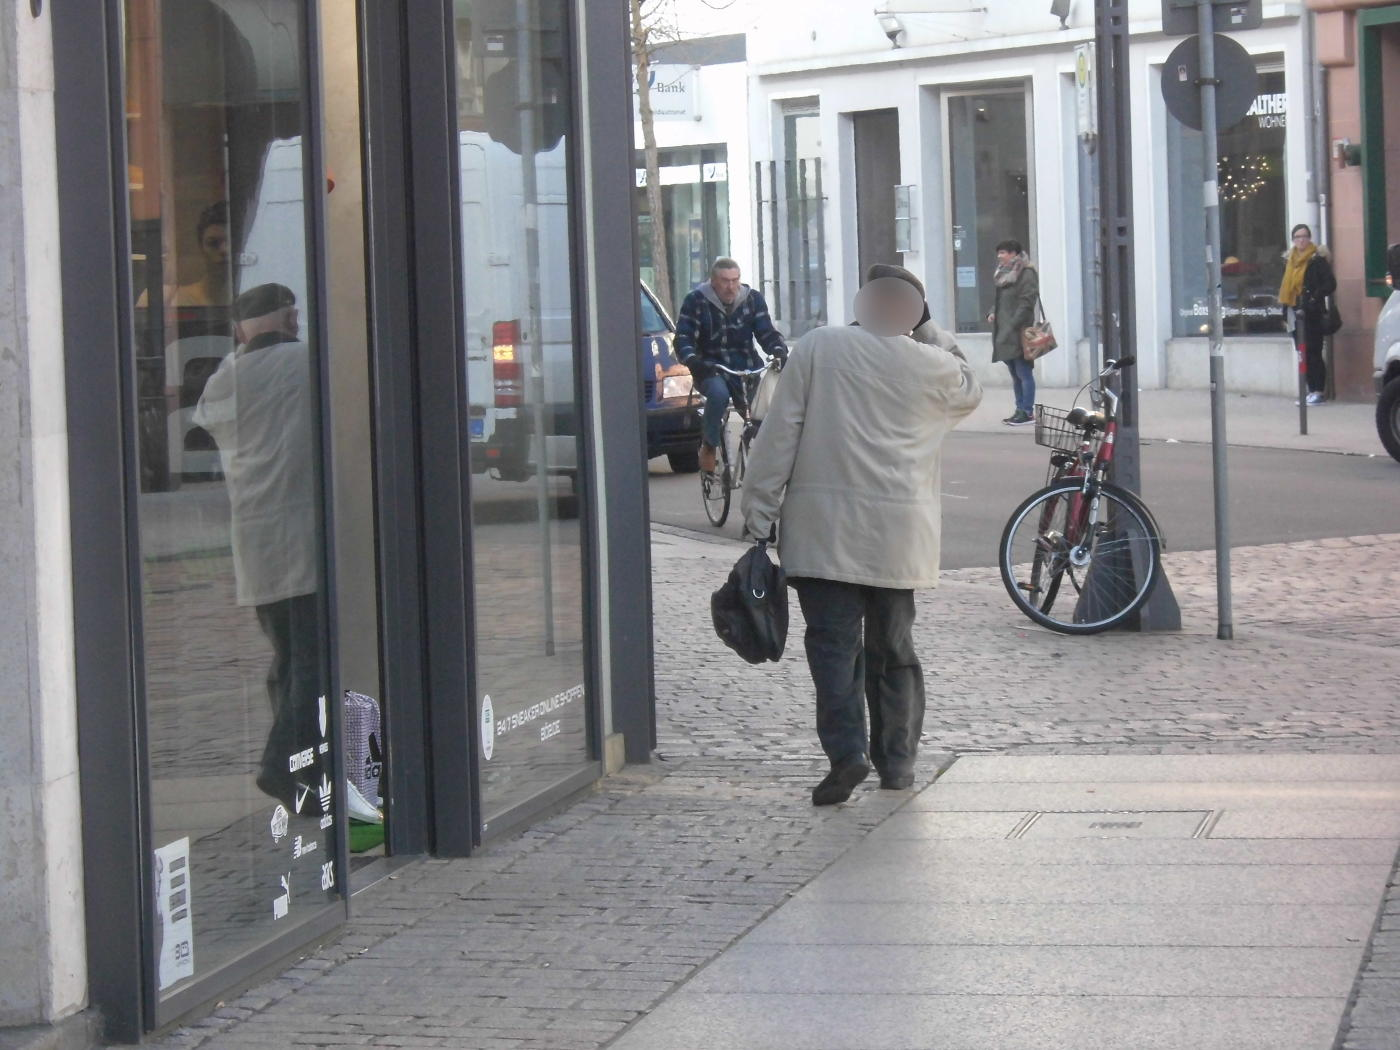 Speyer, Bruchsal: No Jehovah's Witnesses